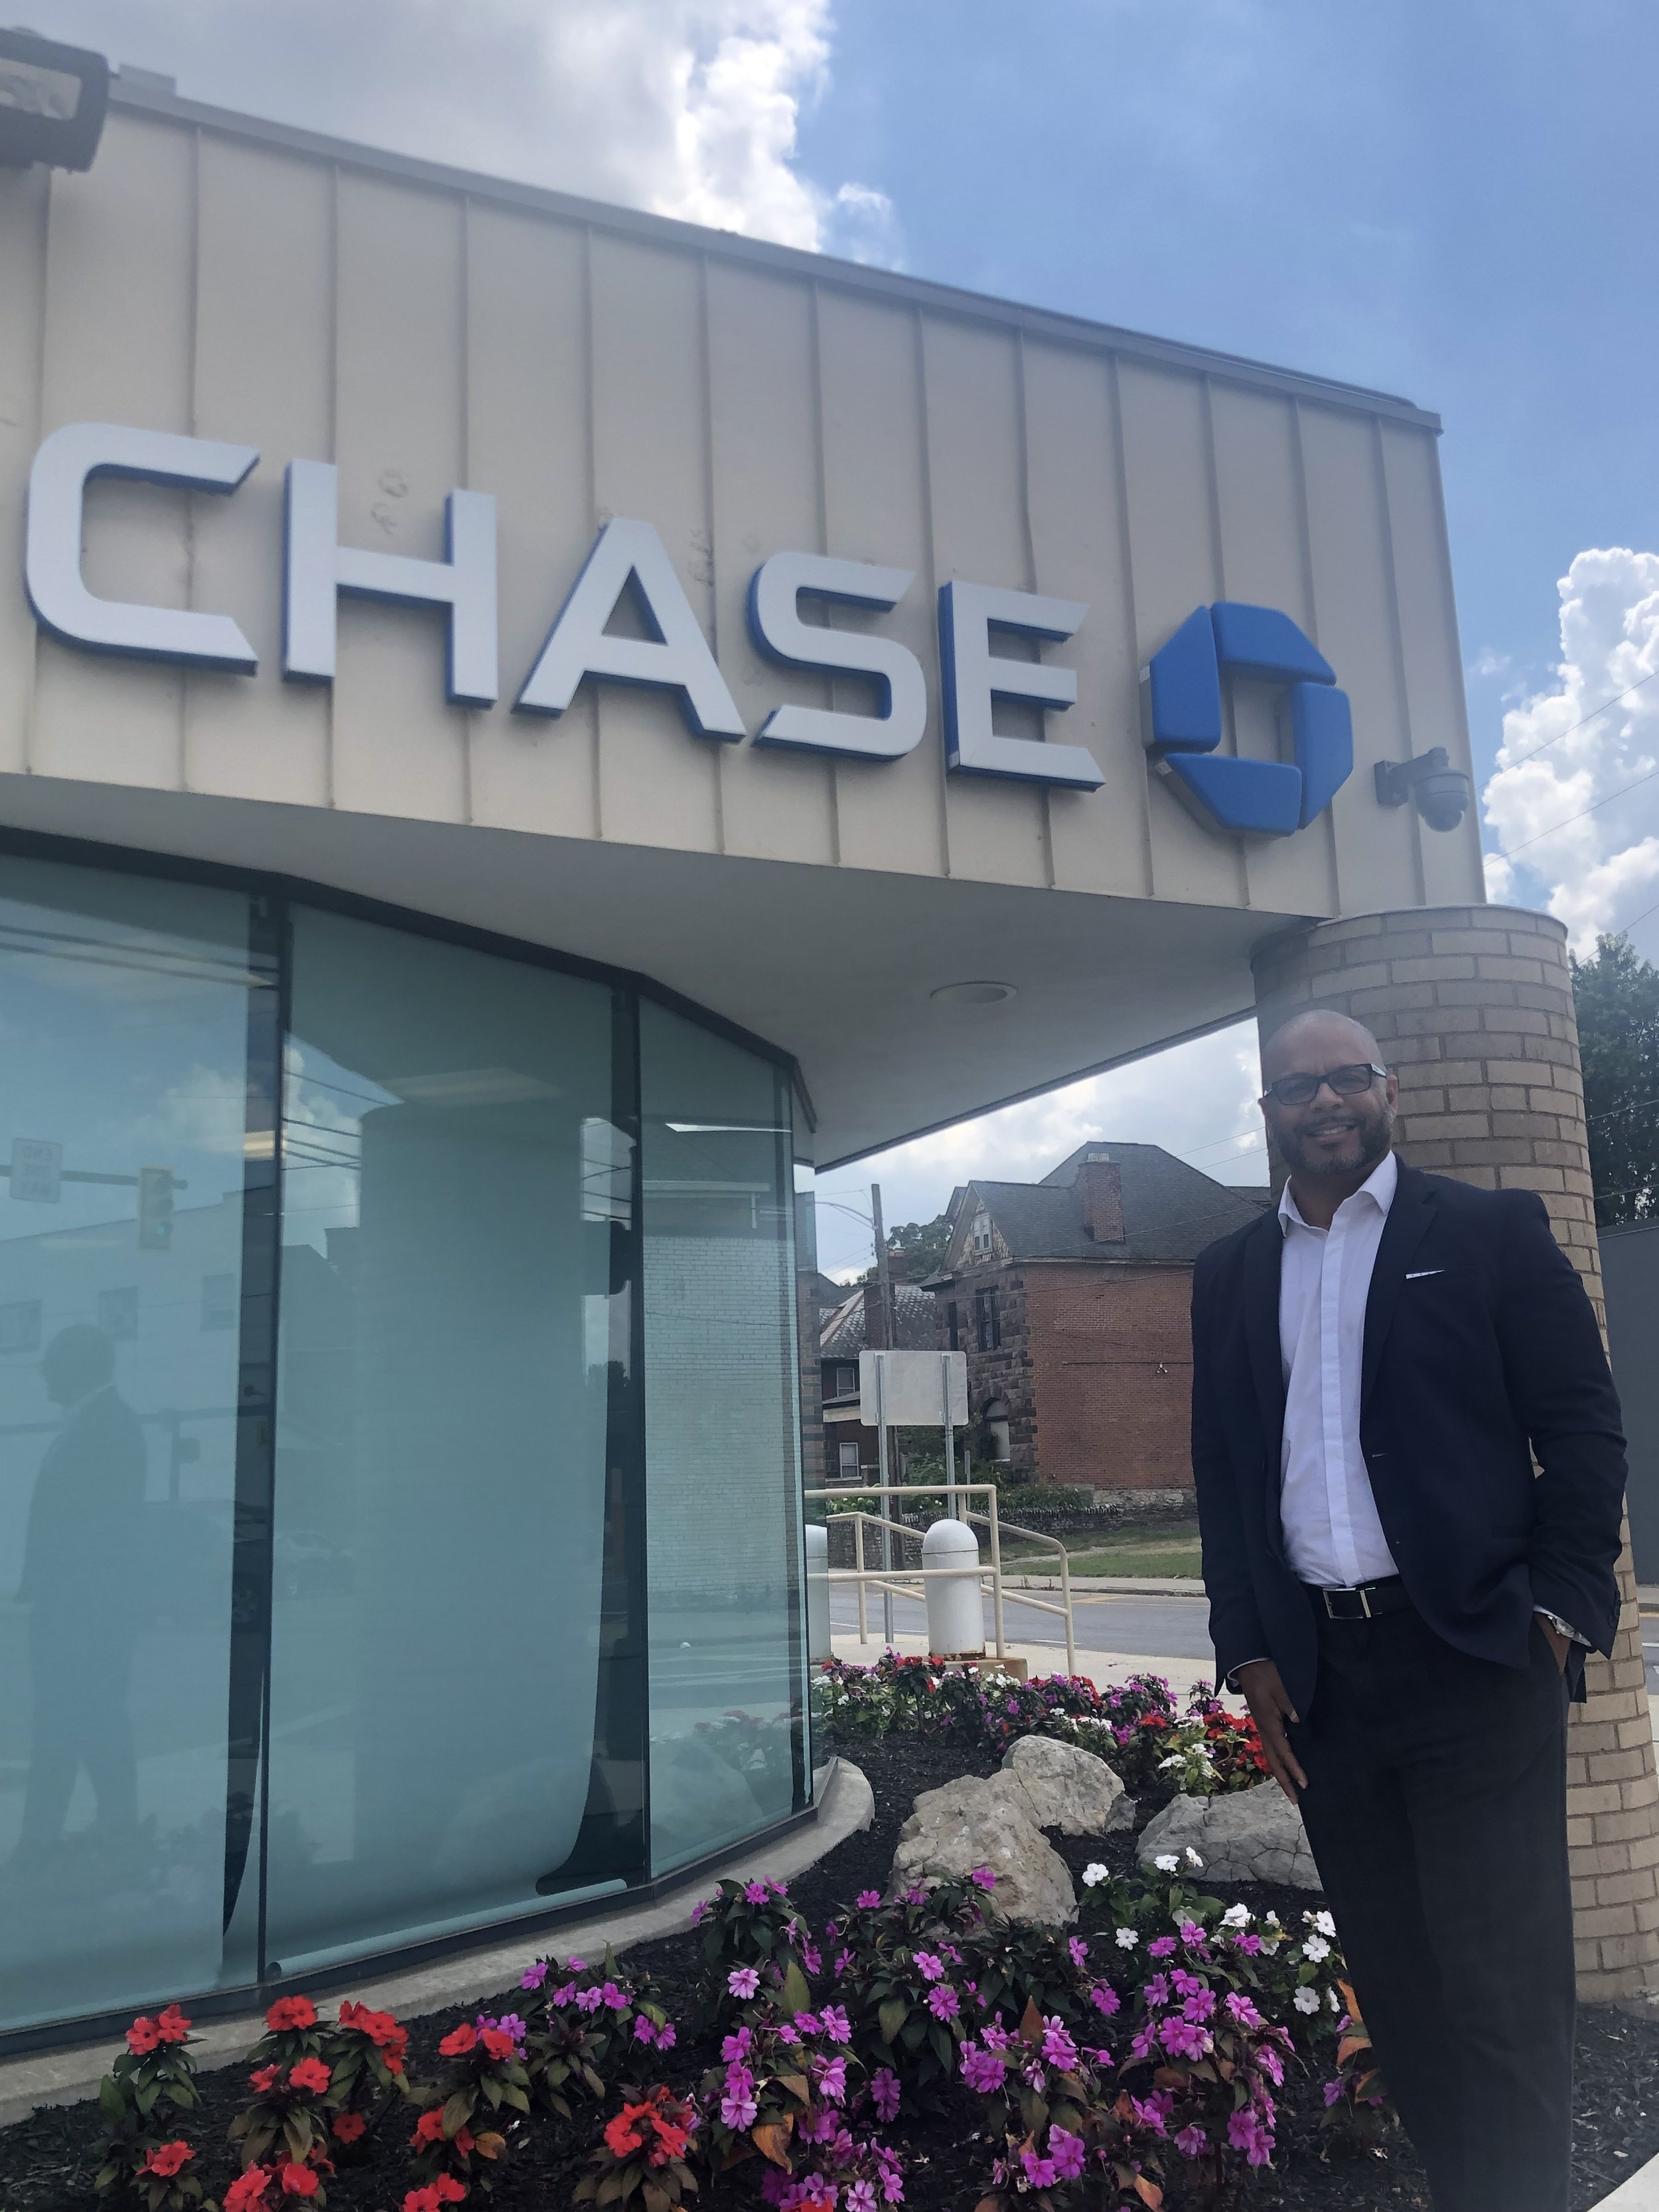 Jacques McKee, Relationship Officer, Community Reinvestment & Partnerships, JPMorgan Chase